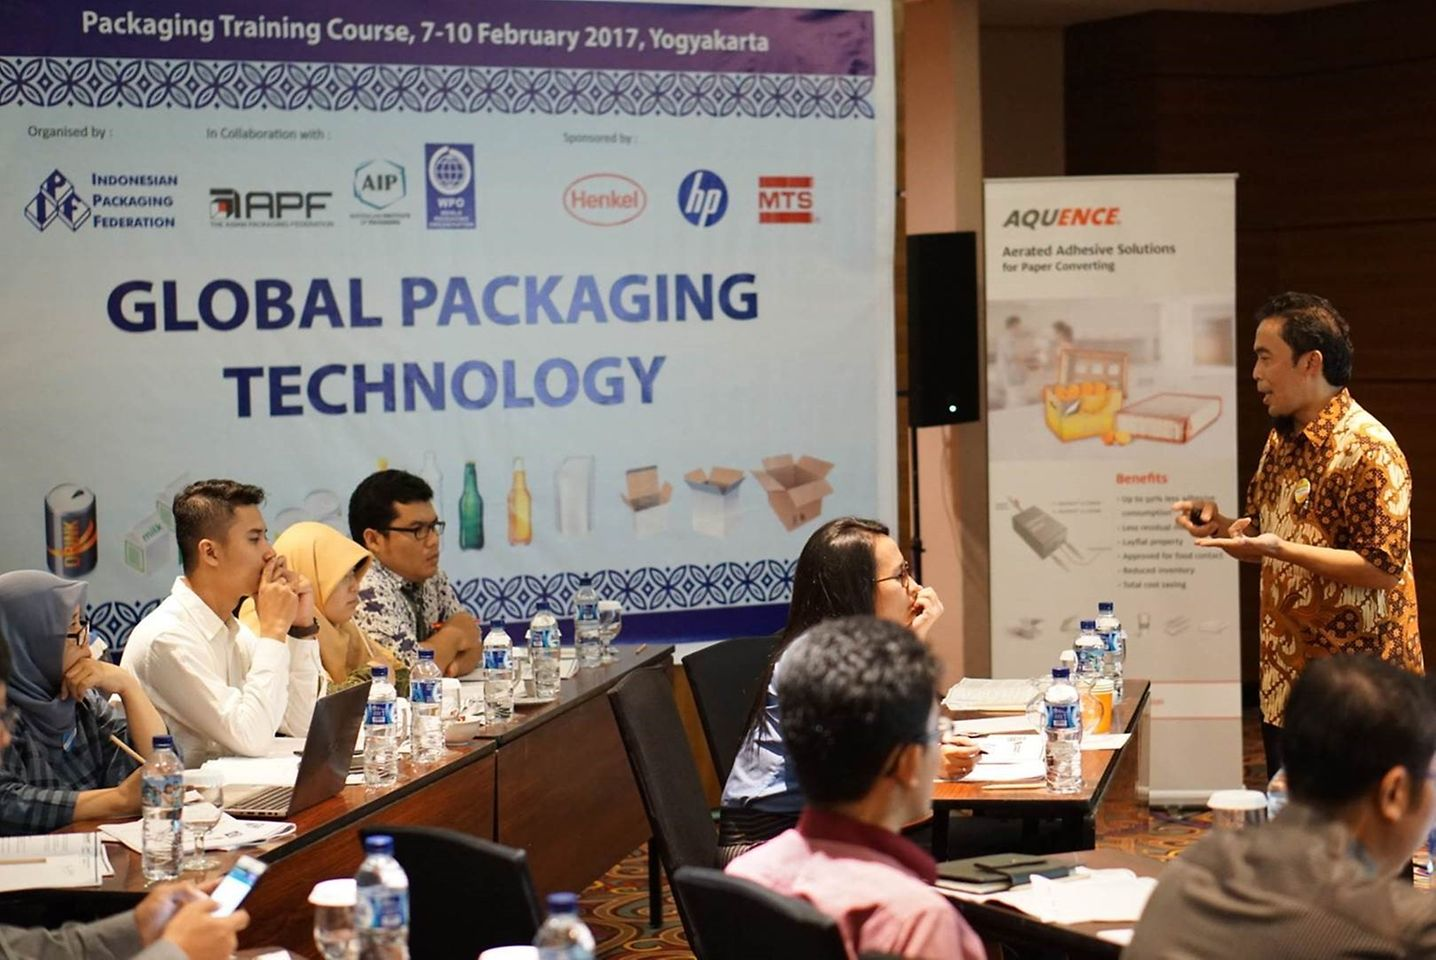 2017-02-28-Henkel Indonesia participates in Global Packaging Technology Training.jpg